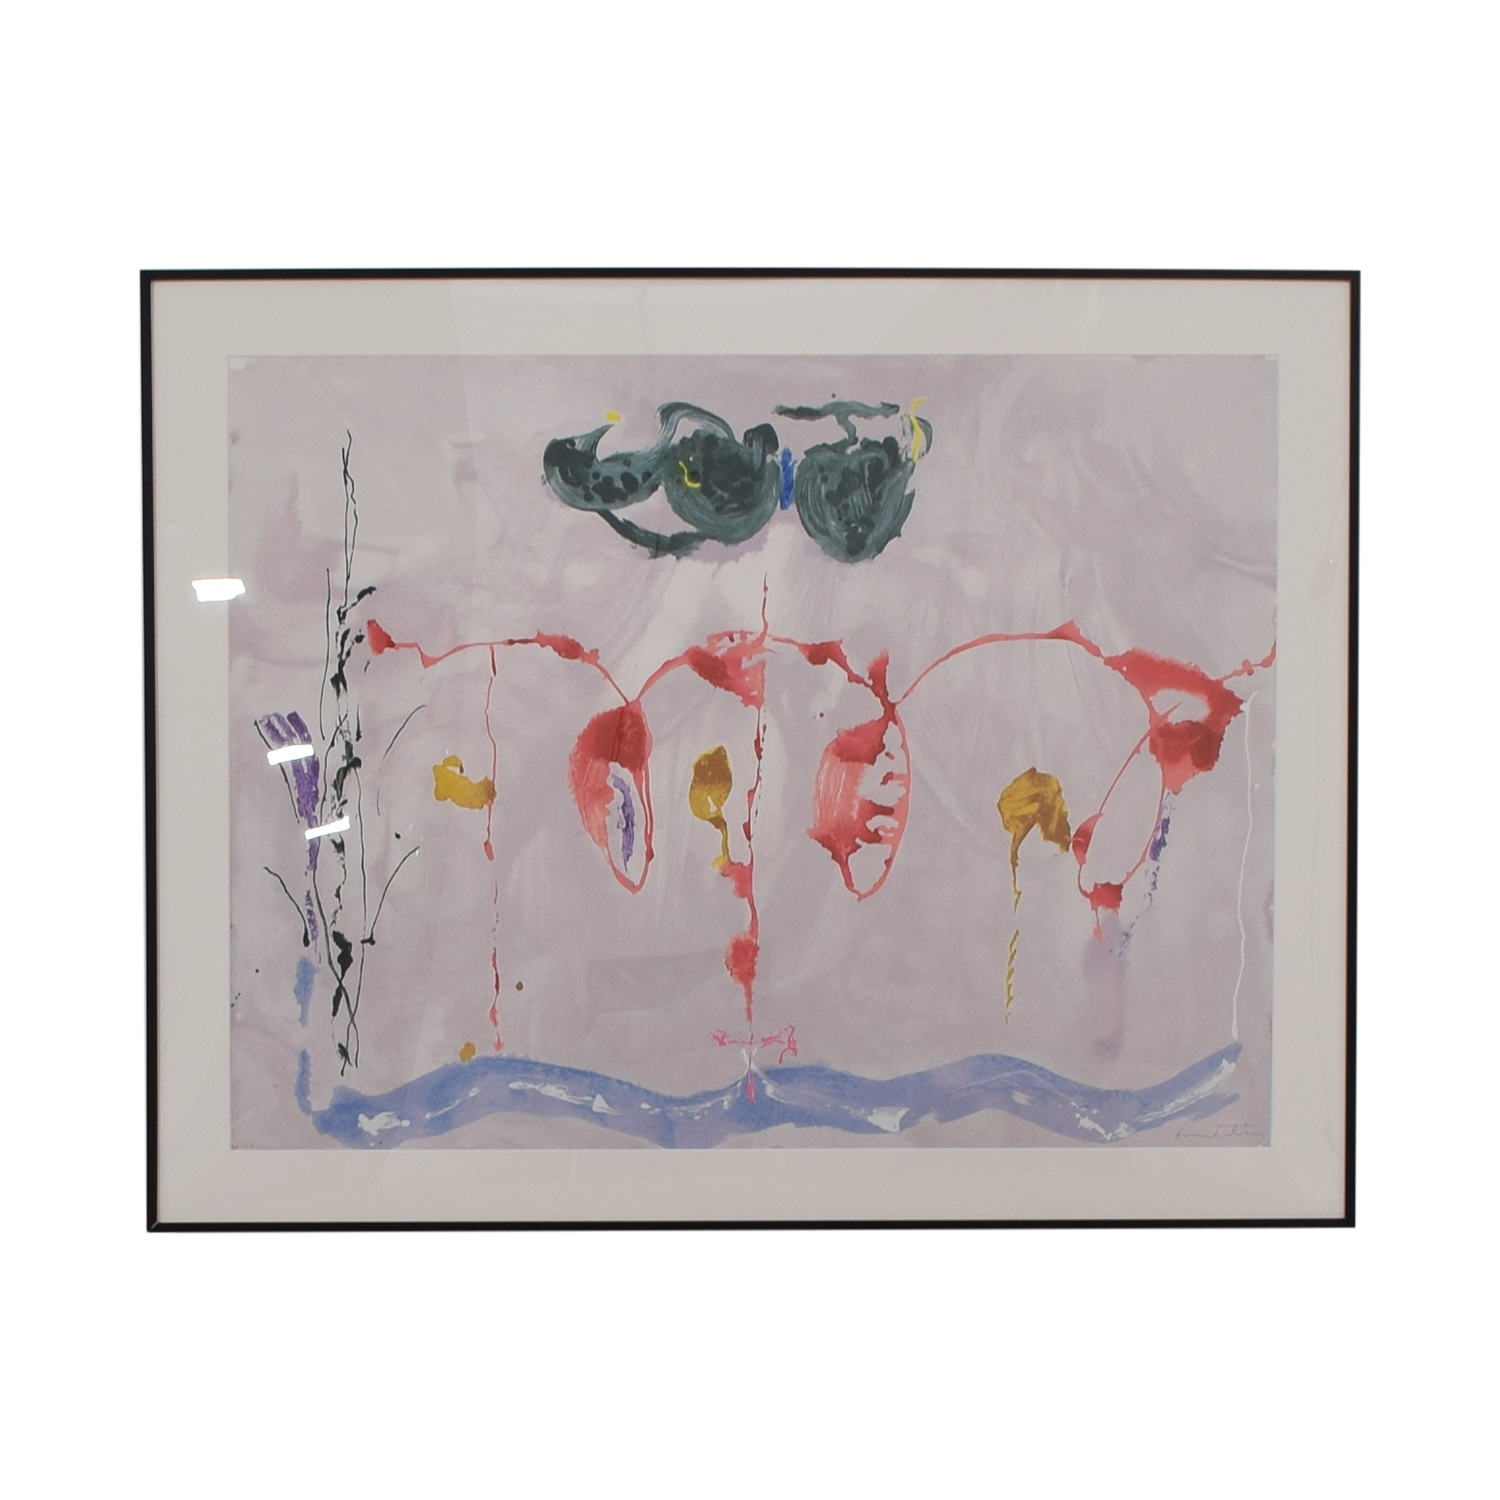 Lincoln Center Helen Frankenthaler 'Aerie' Silkscreen Print for sale